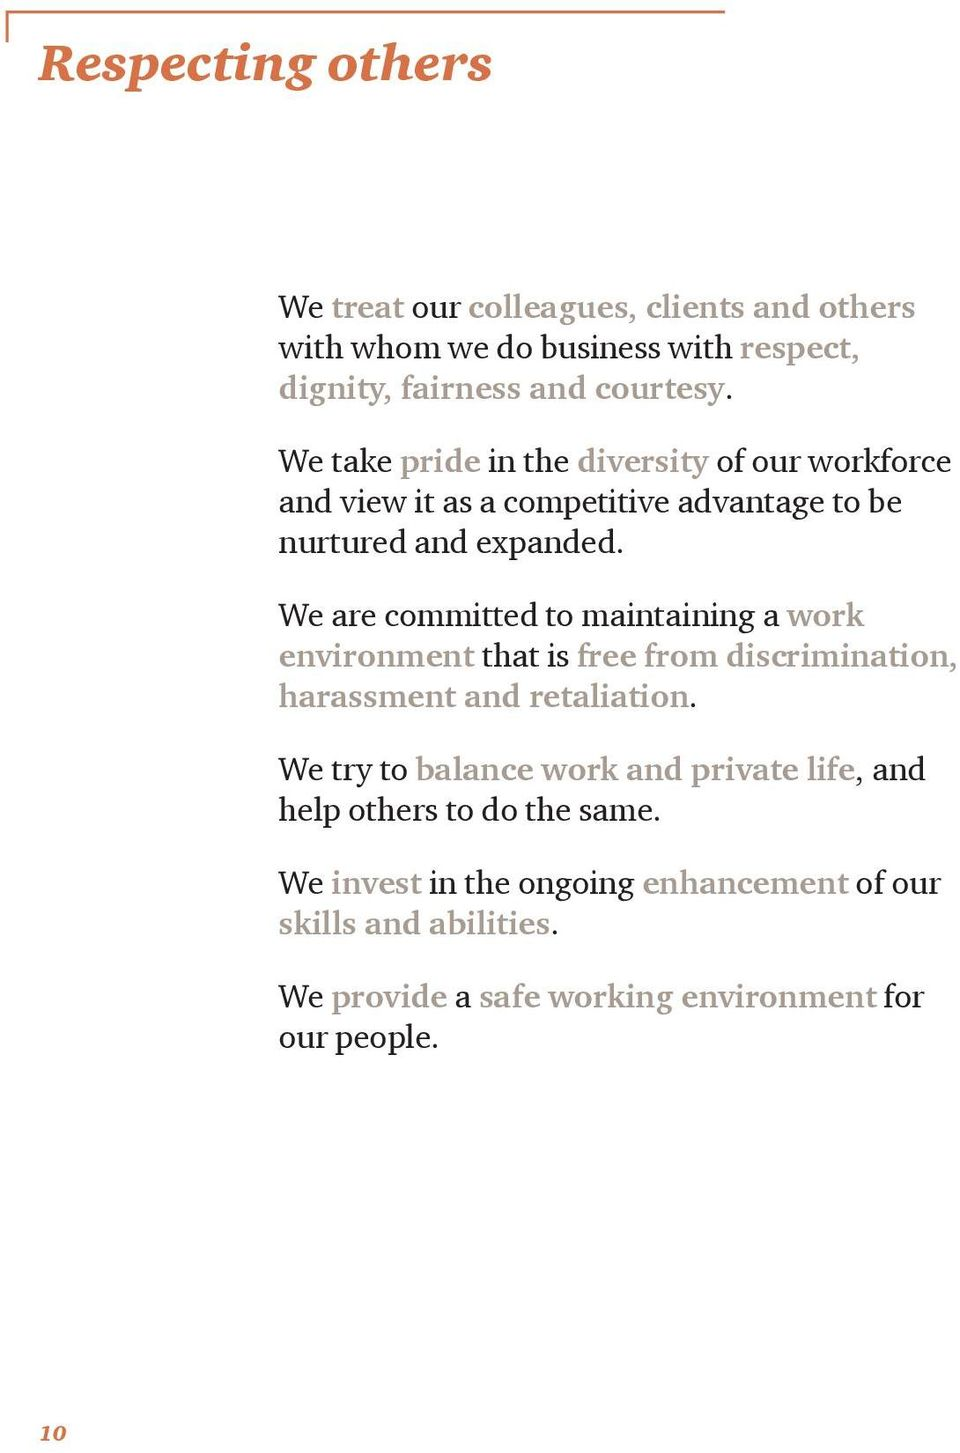 We are committed to maintaining a work environment that is free from discrimination, harassment and retaliation.